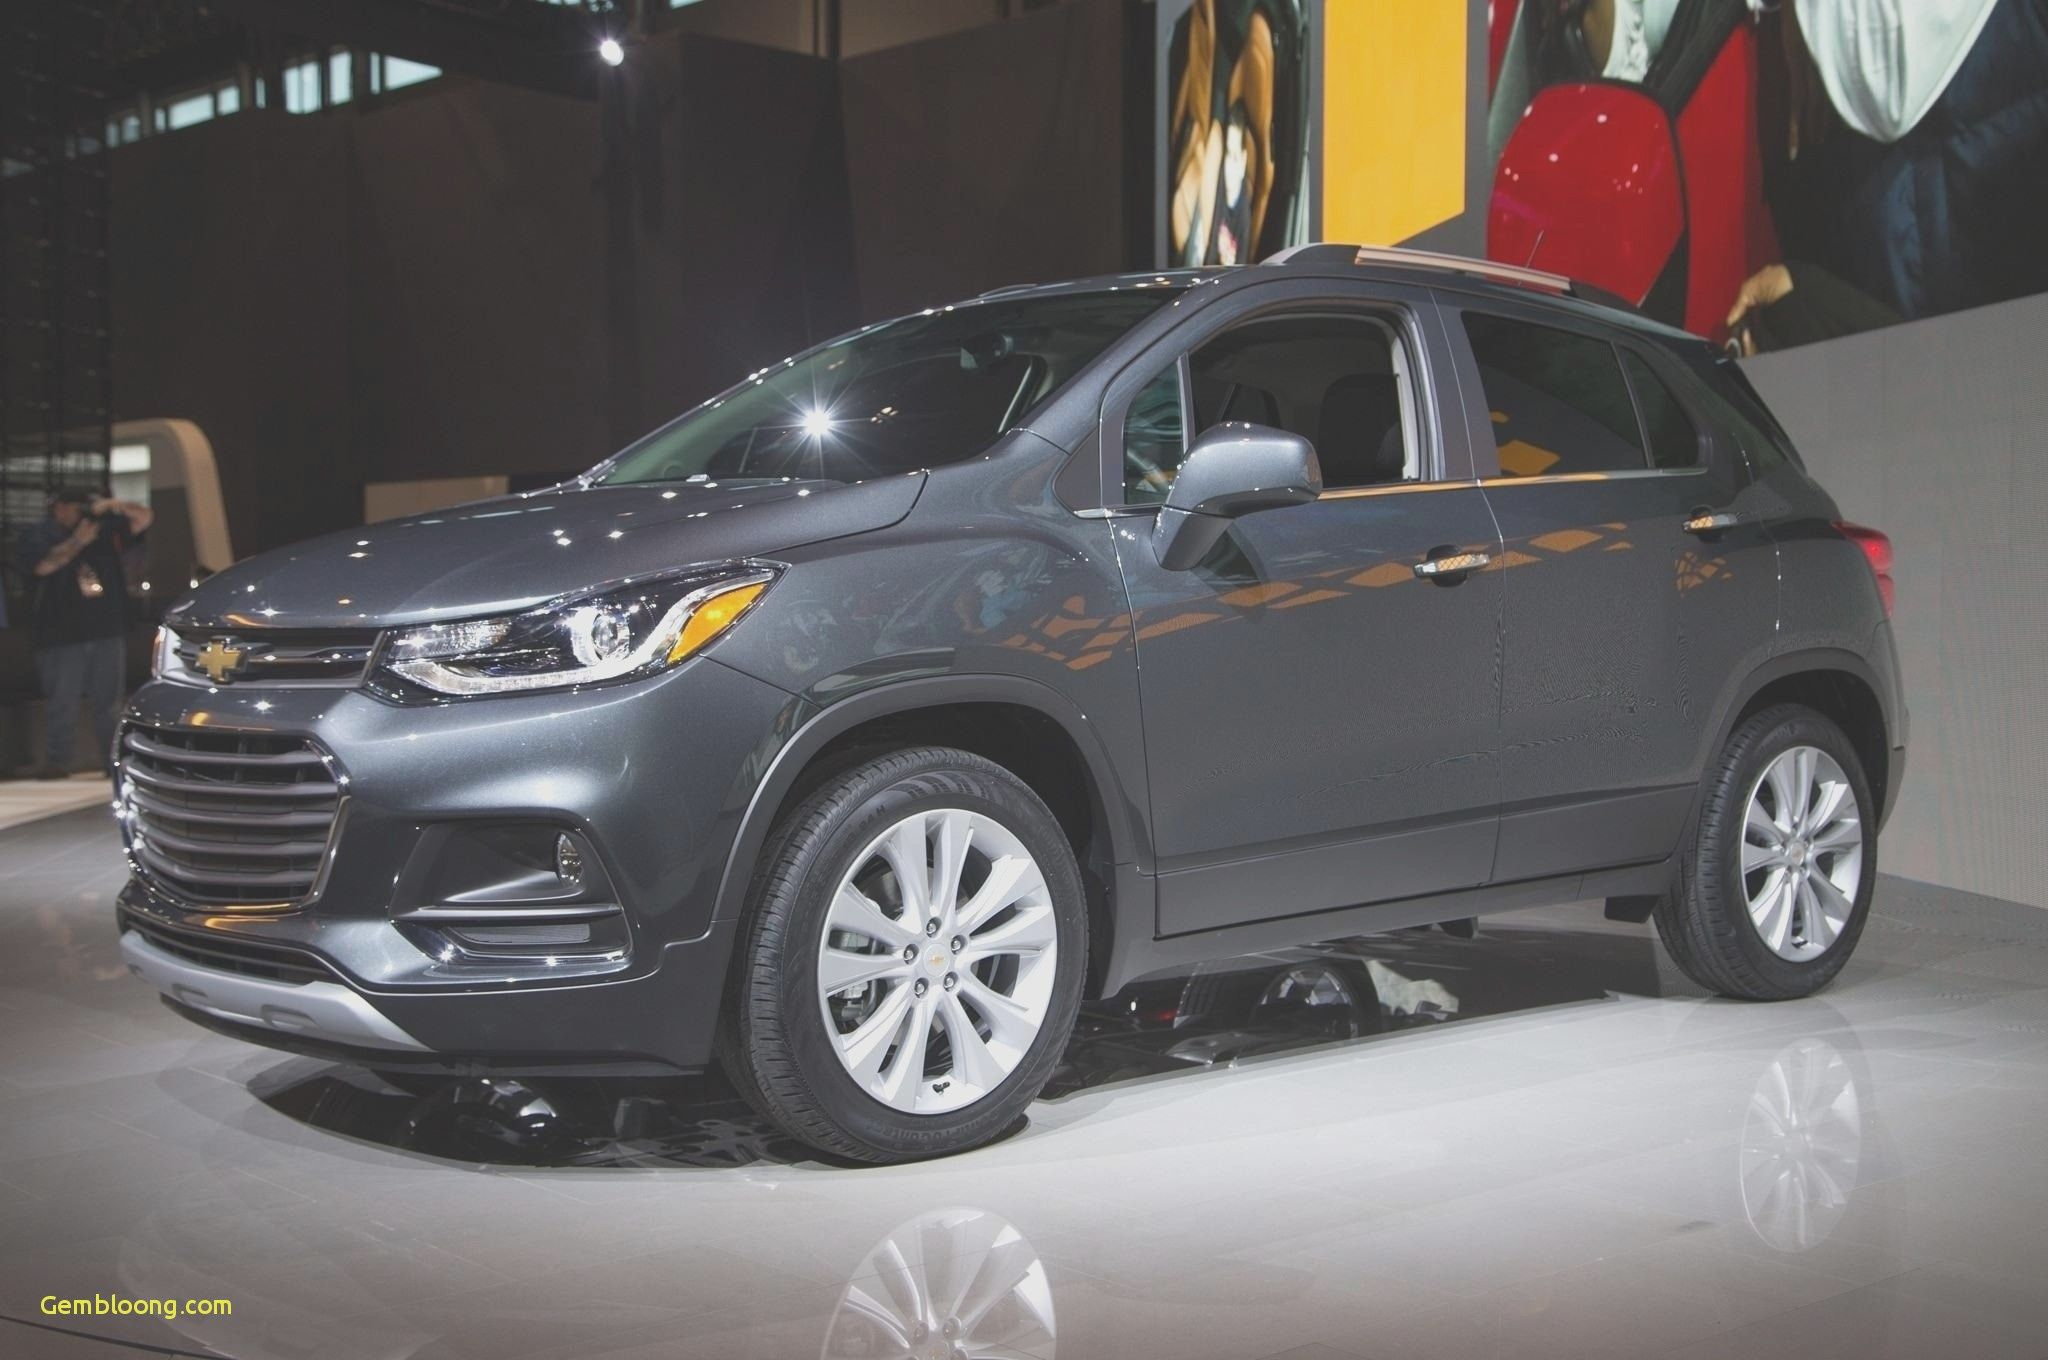 2018 Chevrolet Trax First Look 8 Wonderful Taylor Chevrolet Car77ub Chevrolet Chevrolet Trax Small Suv